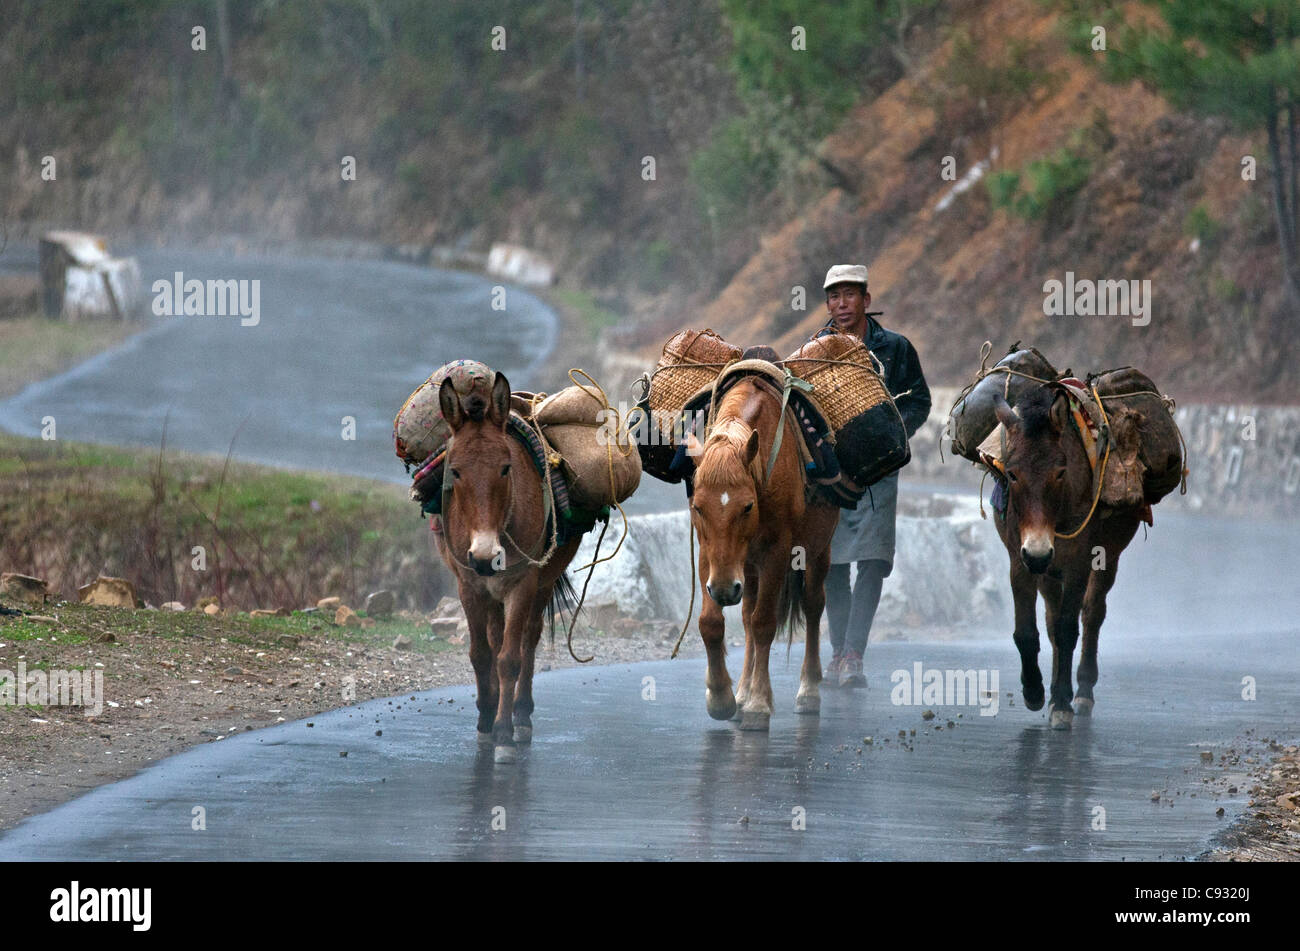 On a wet, windy day, a man drives his pack mules laden with food over the Senghor Pass. - Stock Image